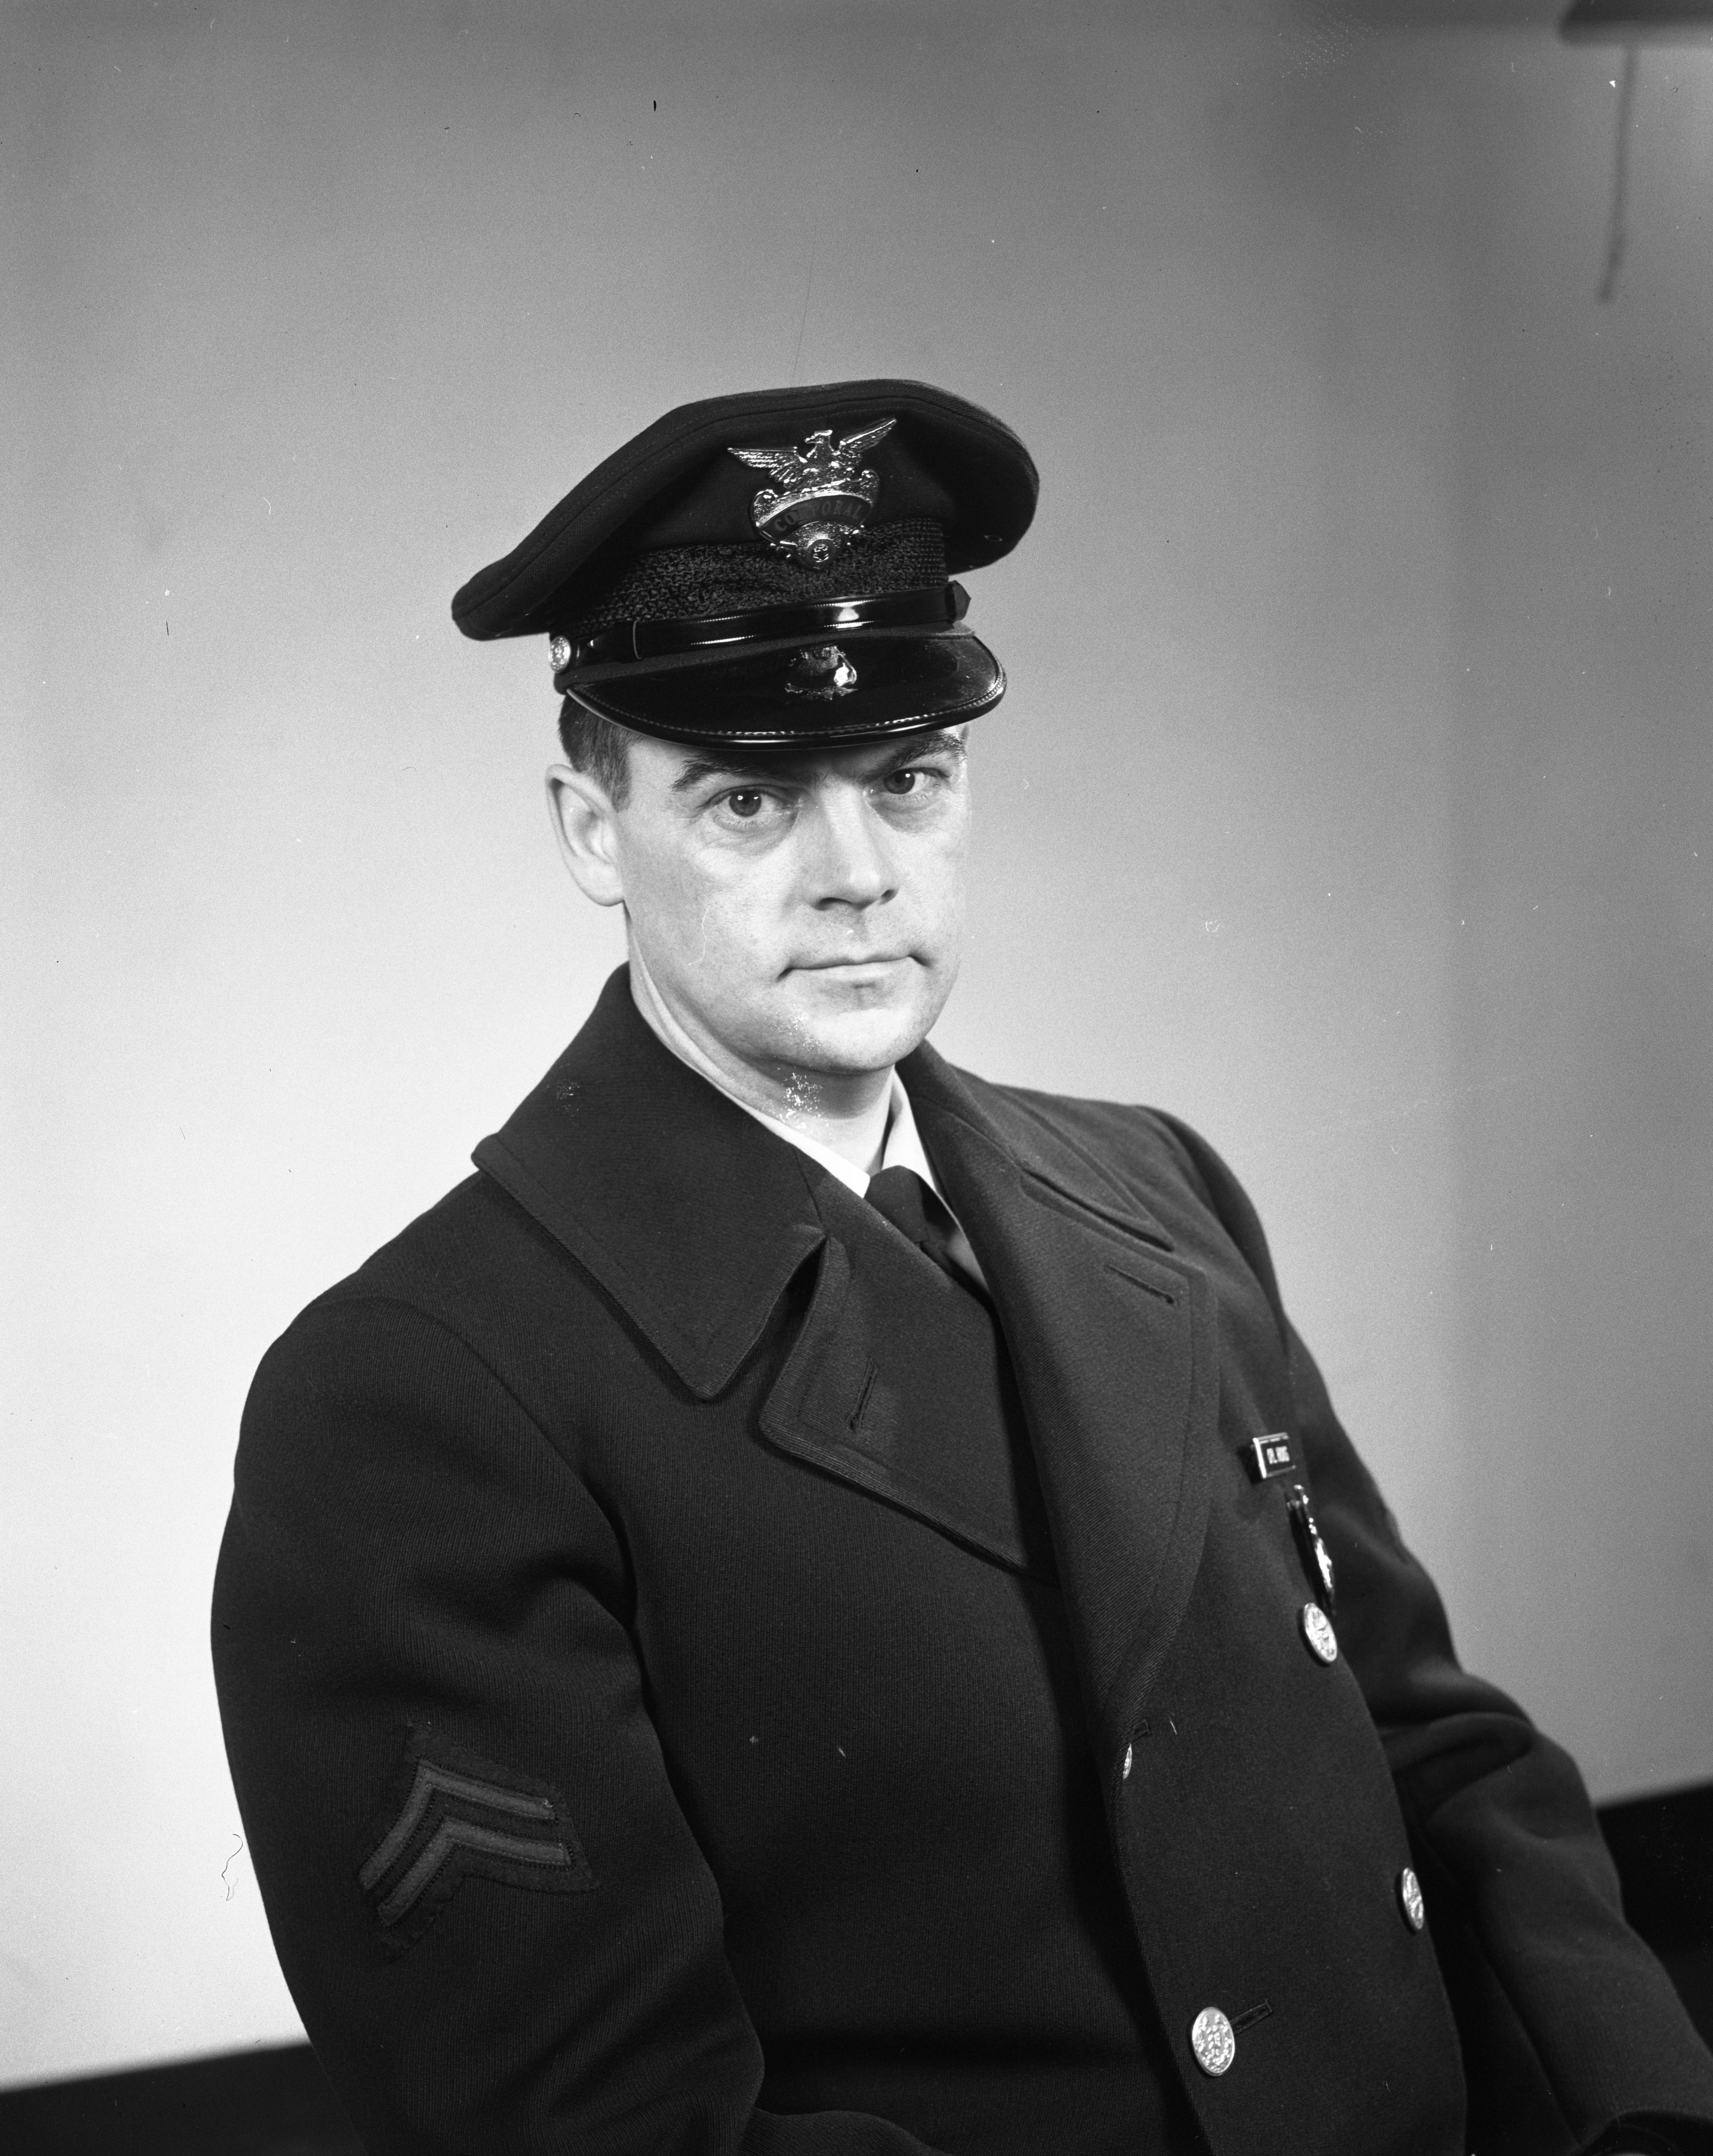 Ann Arbor Police Department Detective Sgt. Henry C. Hicks, February 1963 image